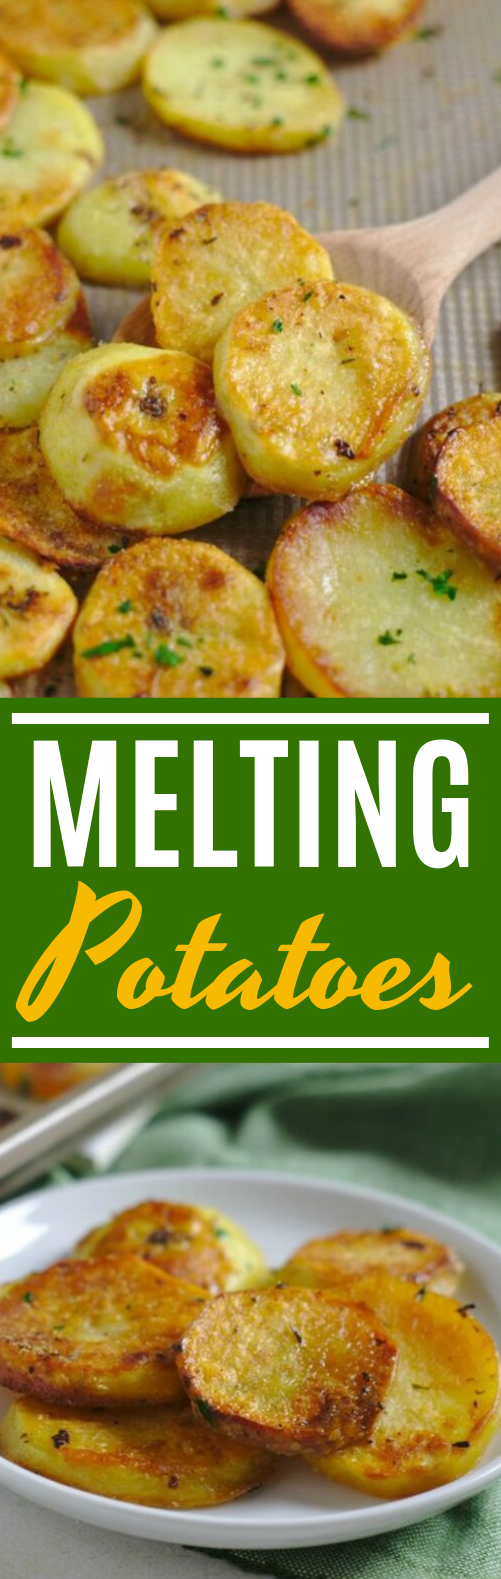 Melting Potatoes #dinner #recipes